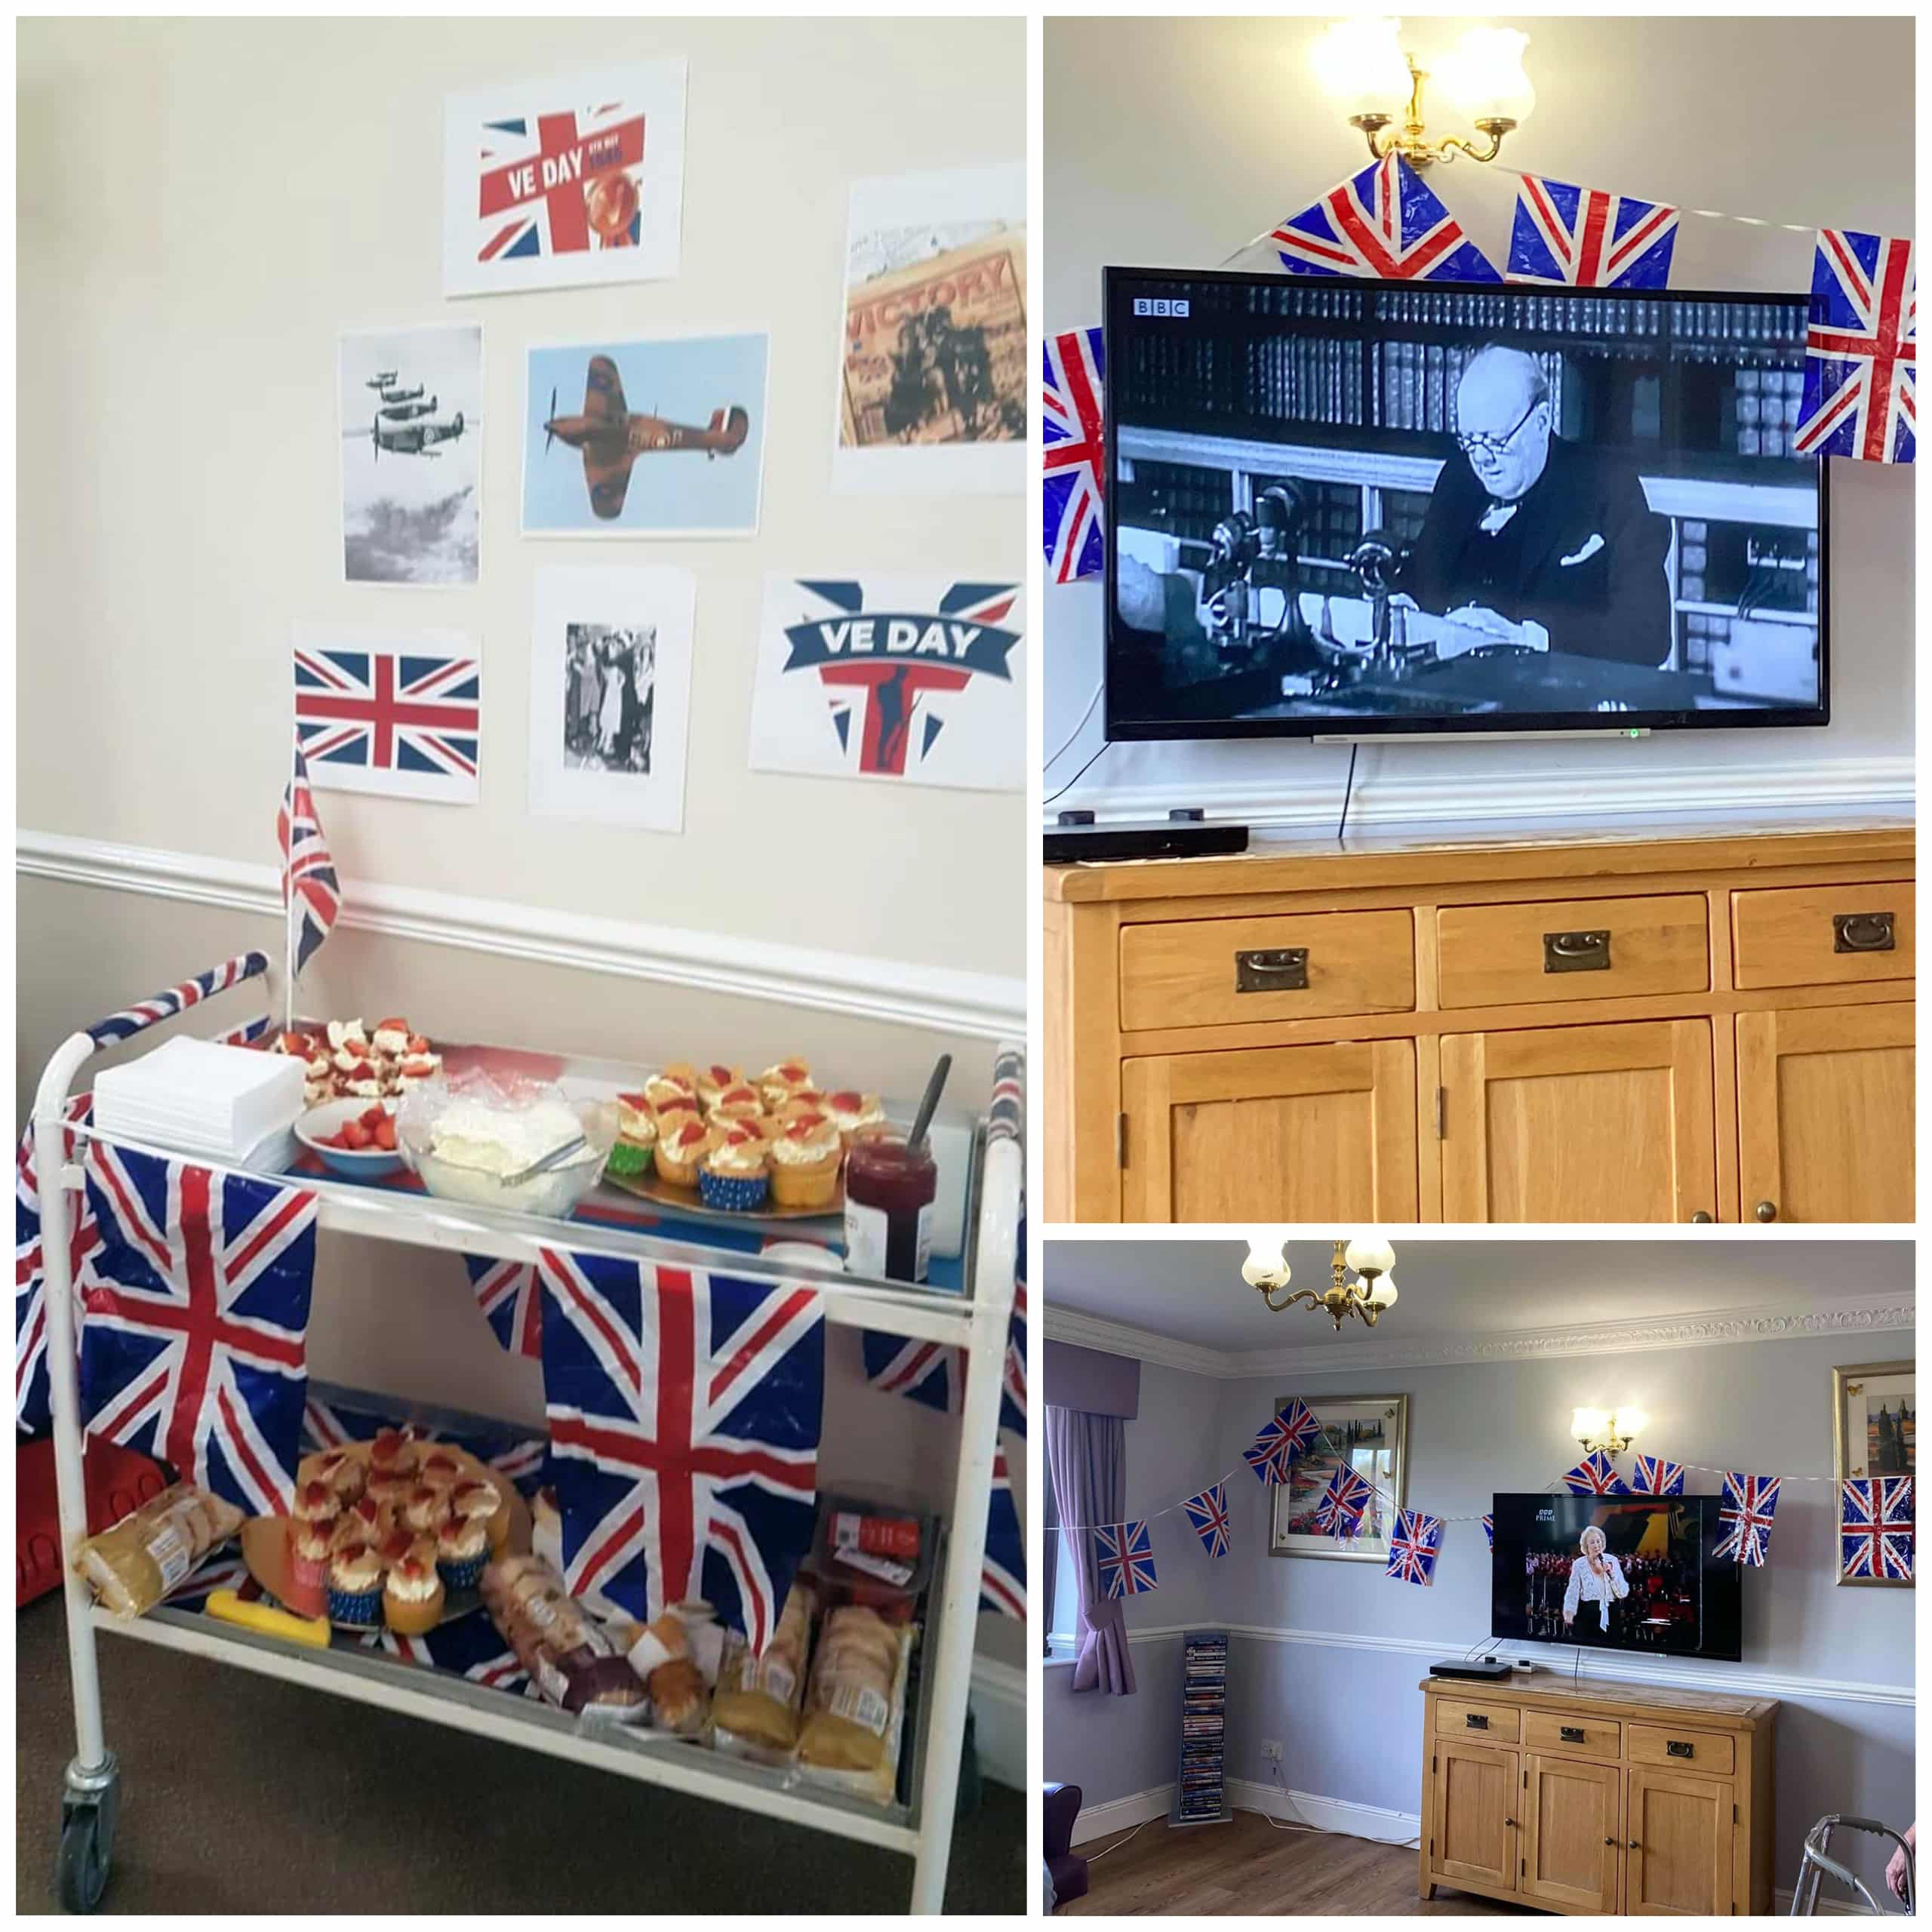 Union Jack decorations and afternoon tea during Briar House Care Home's VE Day celebrations.